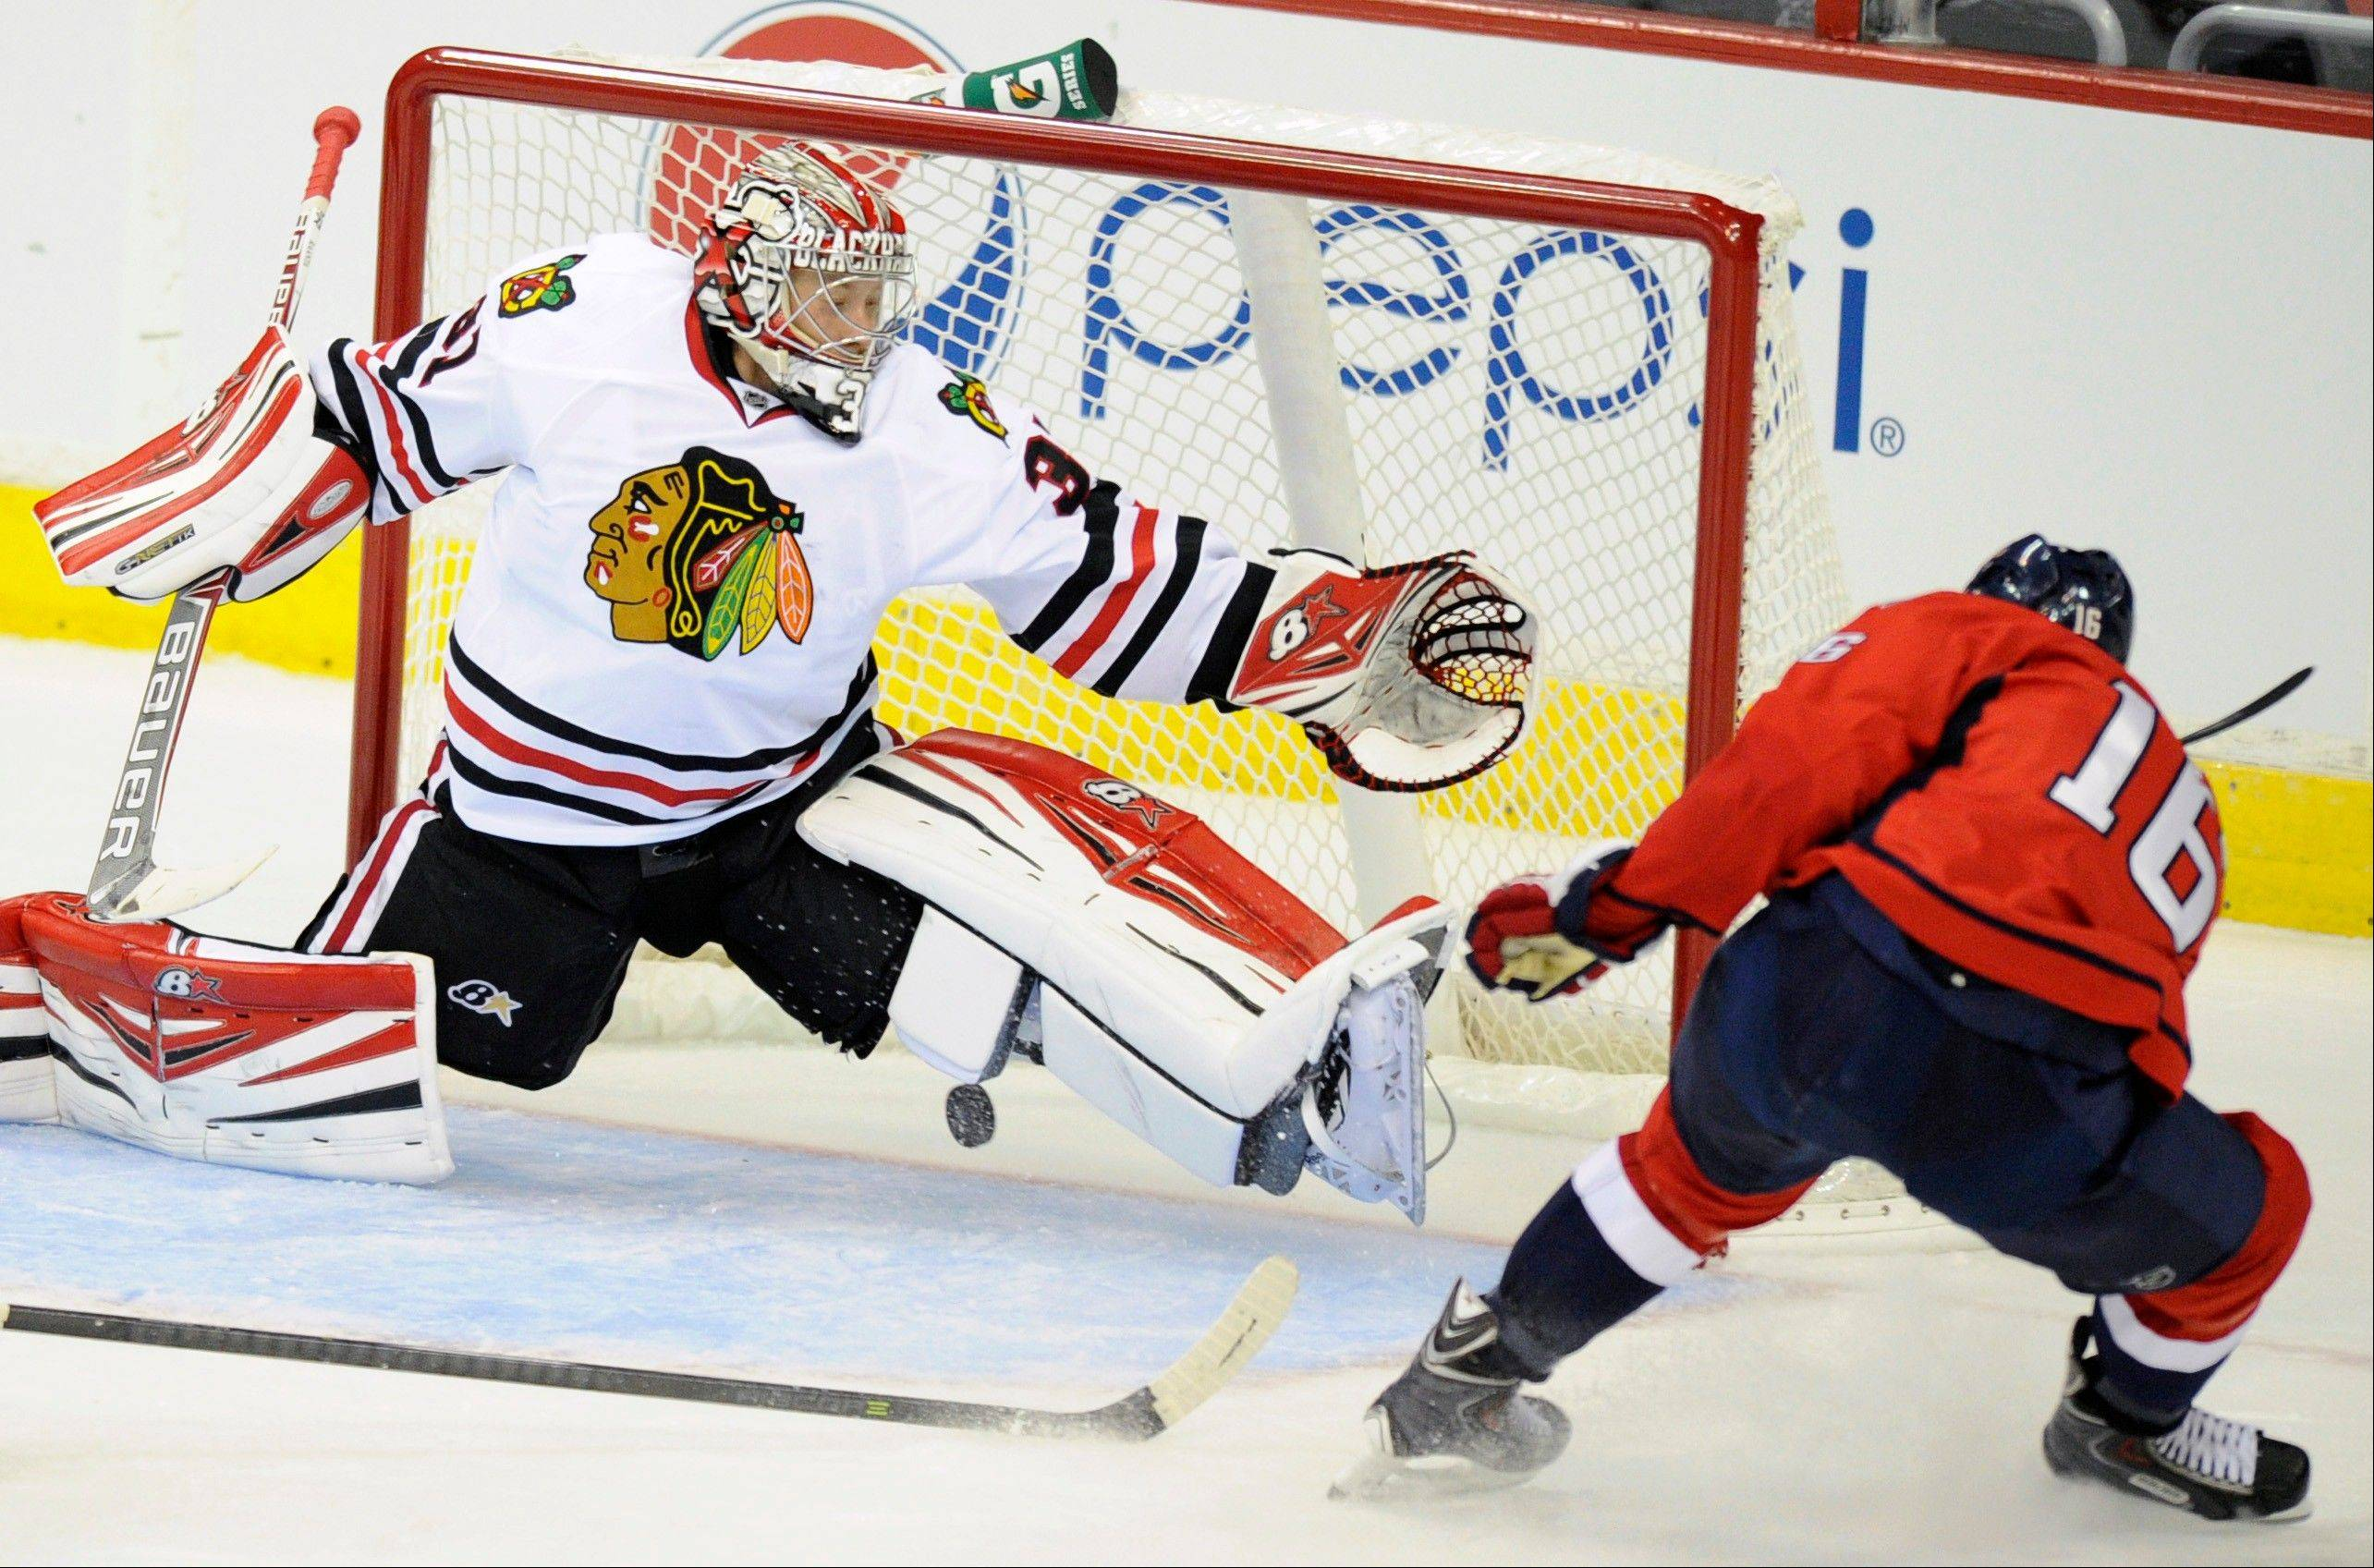 The Capitals� Eric Fehr scores a goal against Blackhawks goalie Antii Raanta during the second period of a preseason game Friday in Washington. (AP Photo/Nick Wass)